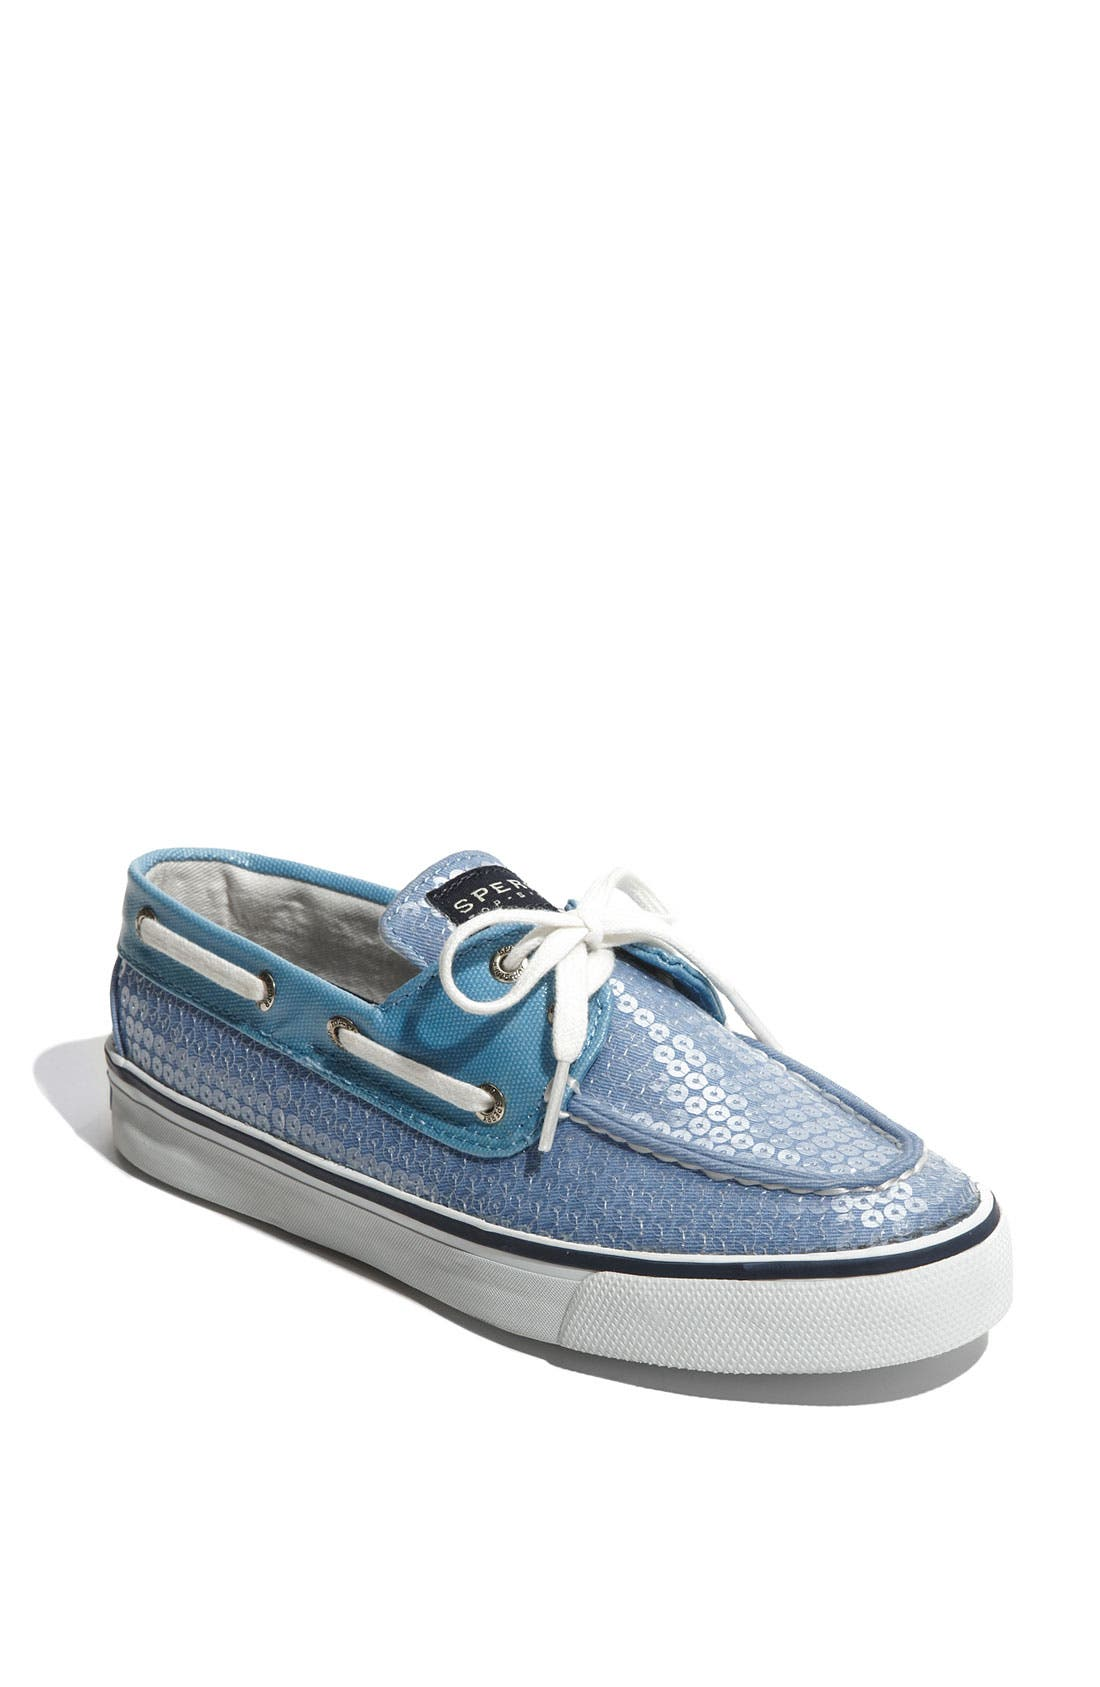 Top-Sider<sup>®</sup> 'Bahama' Sequined Boat Shoe,                             Main thumbnail 22, color,